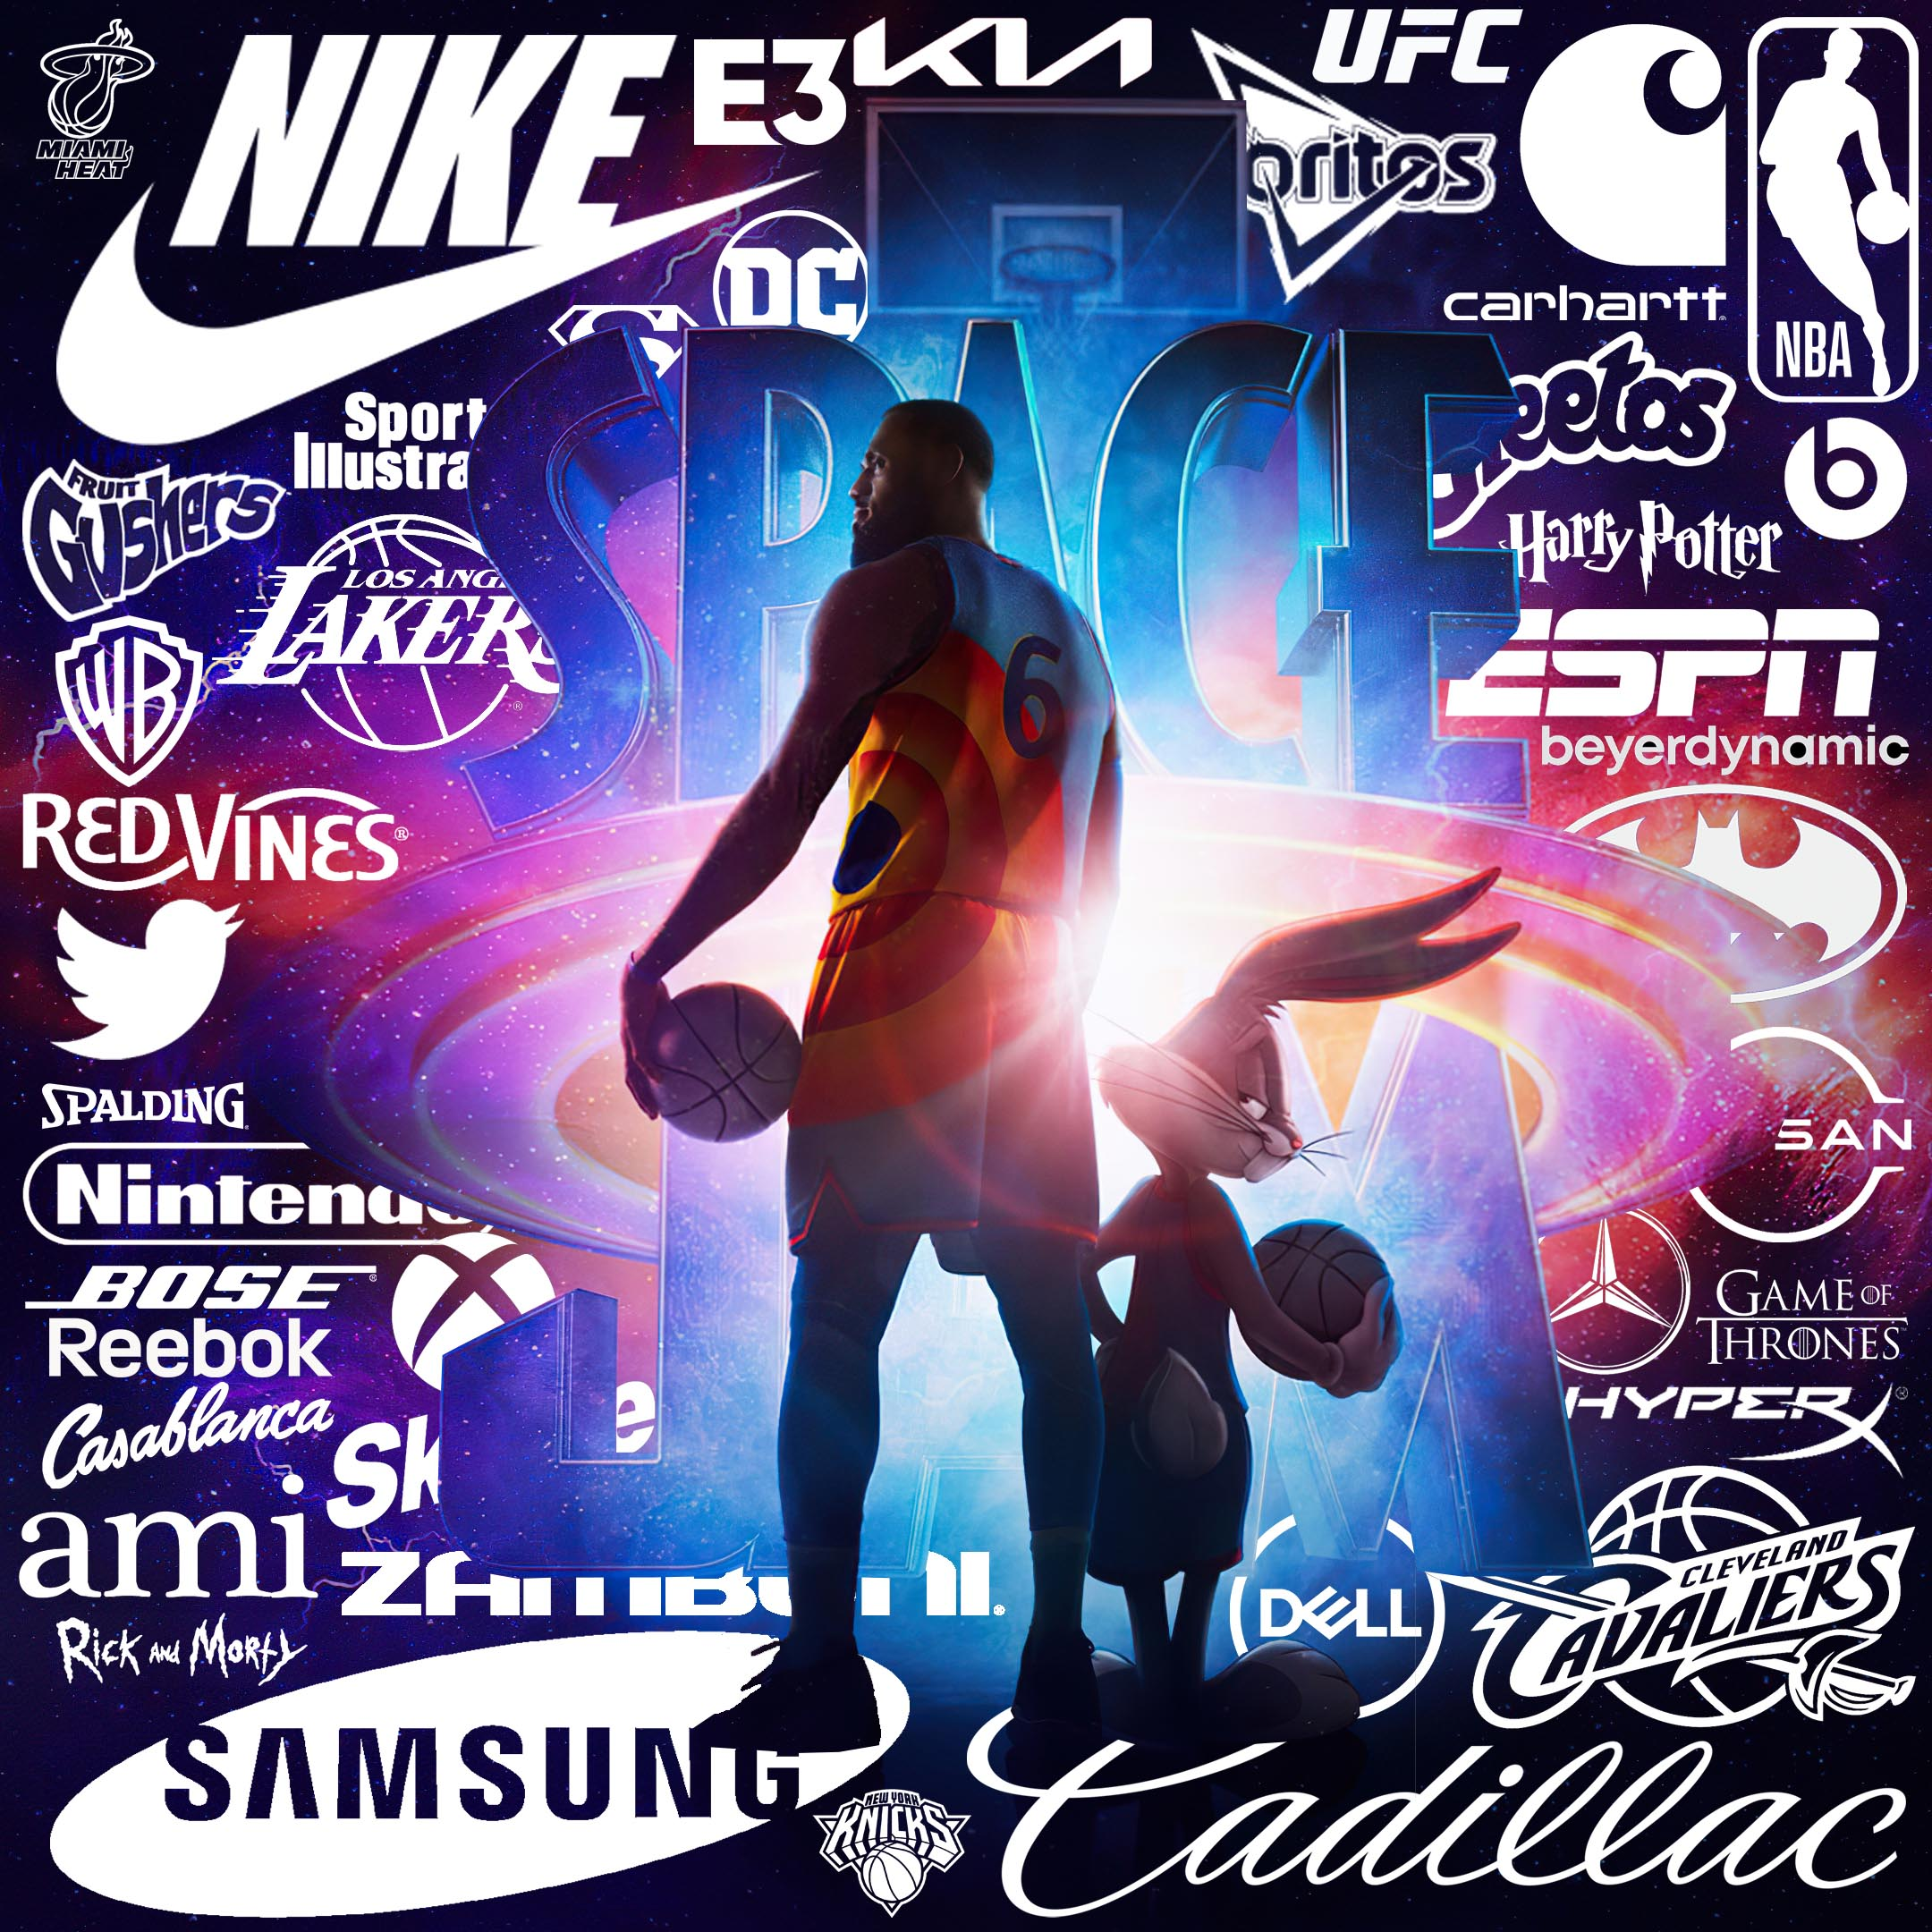 SPACE JAM 2 top 10 product placement brands